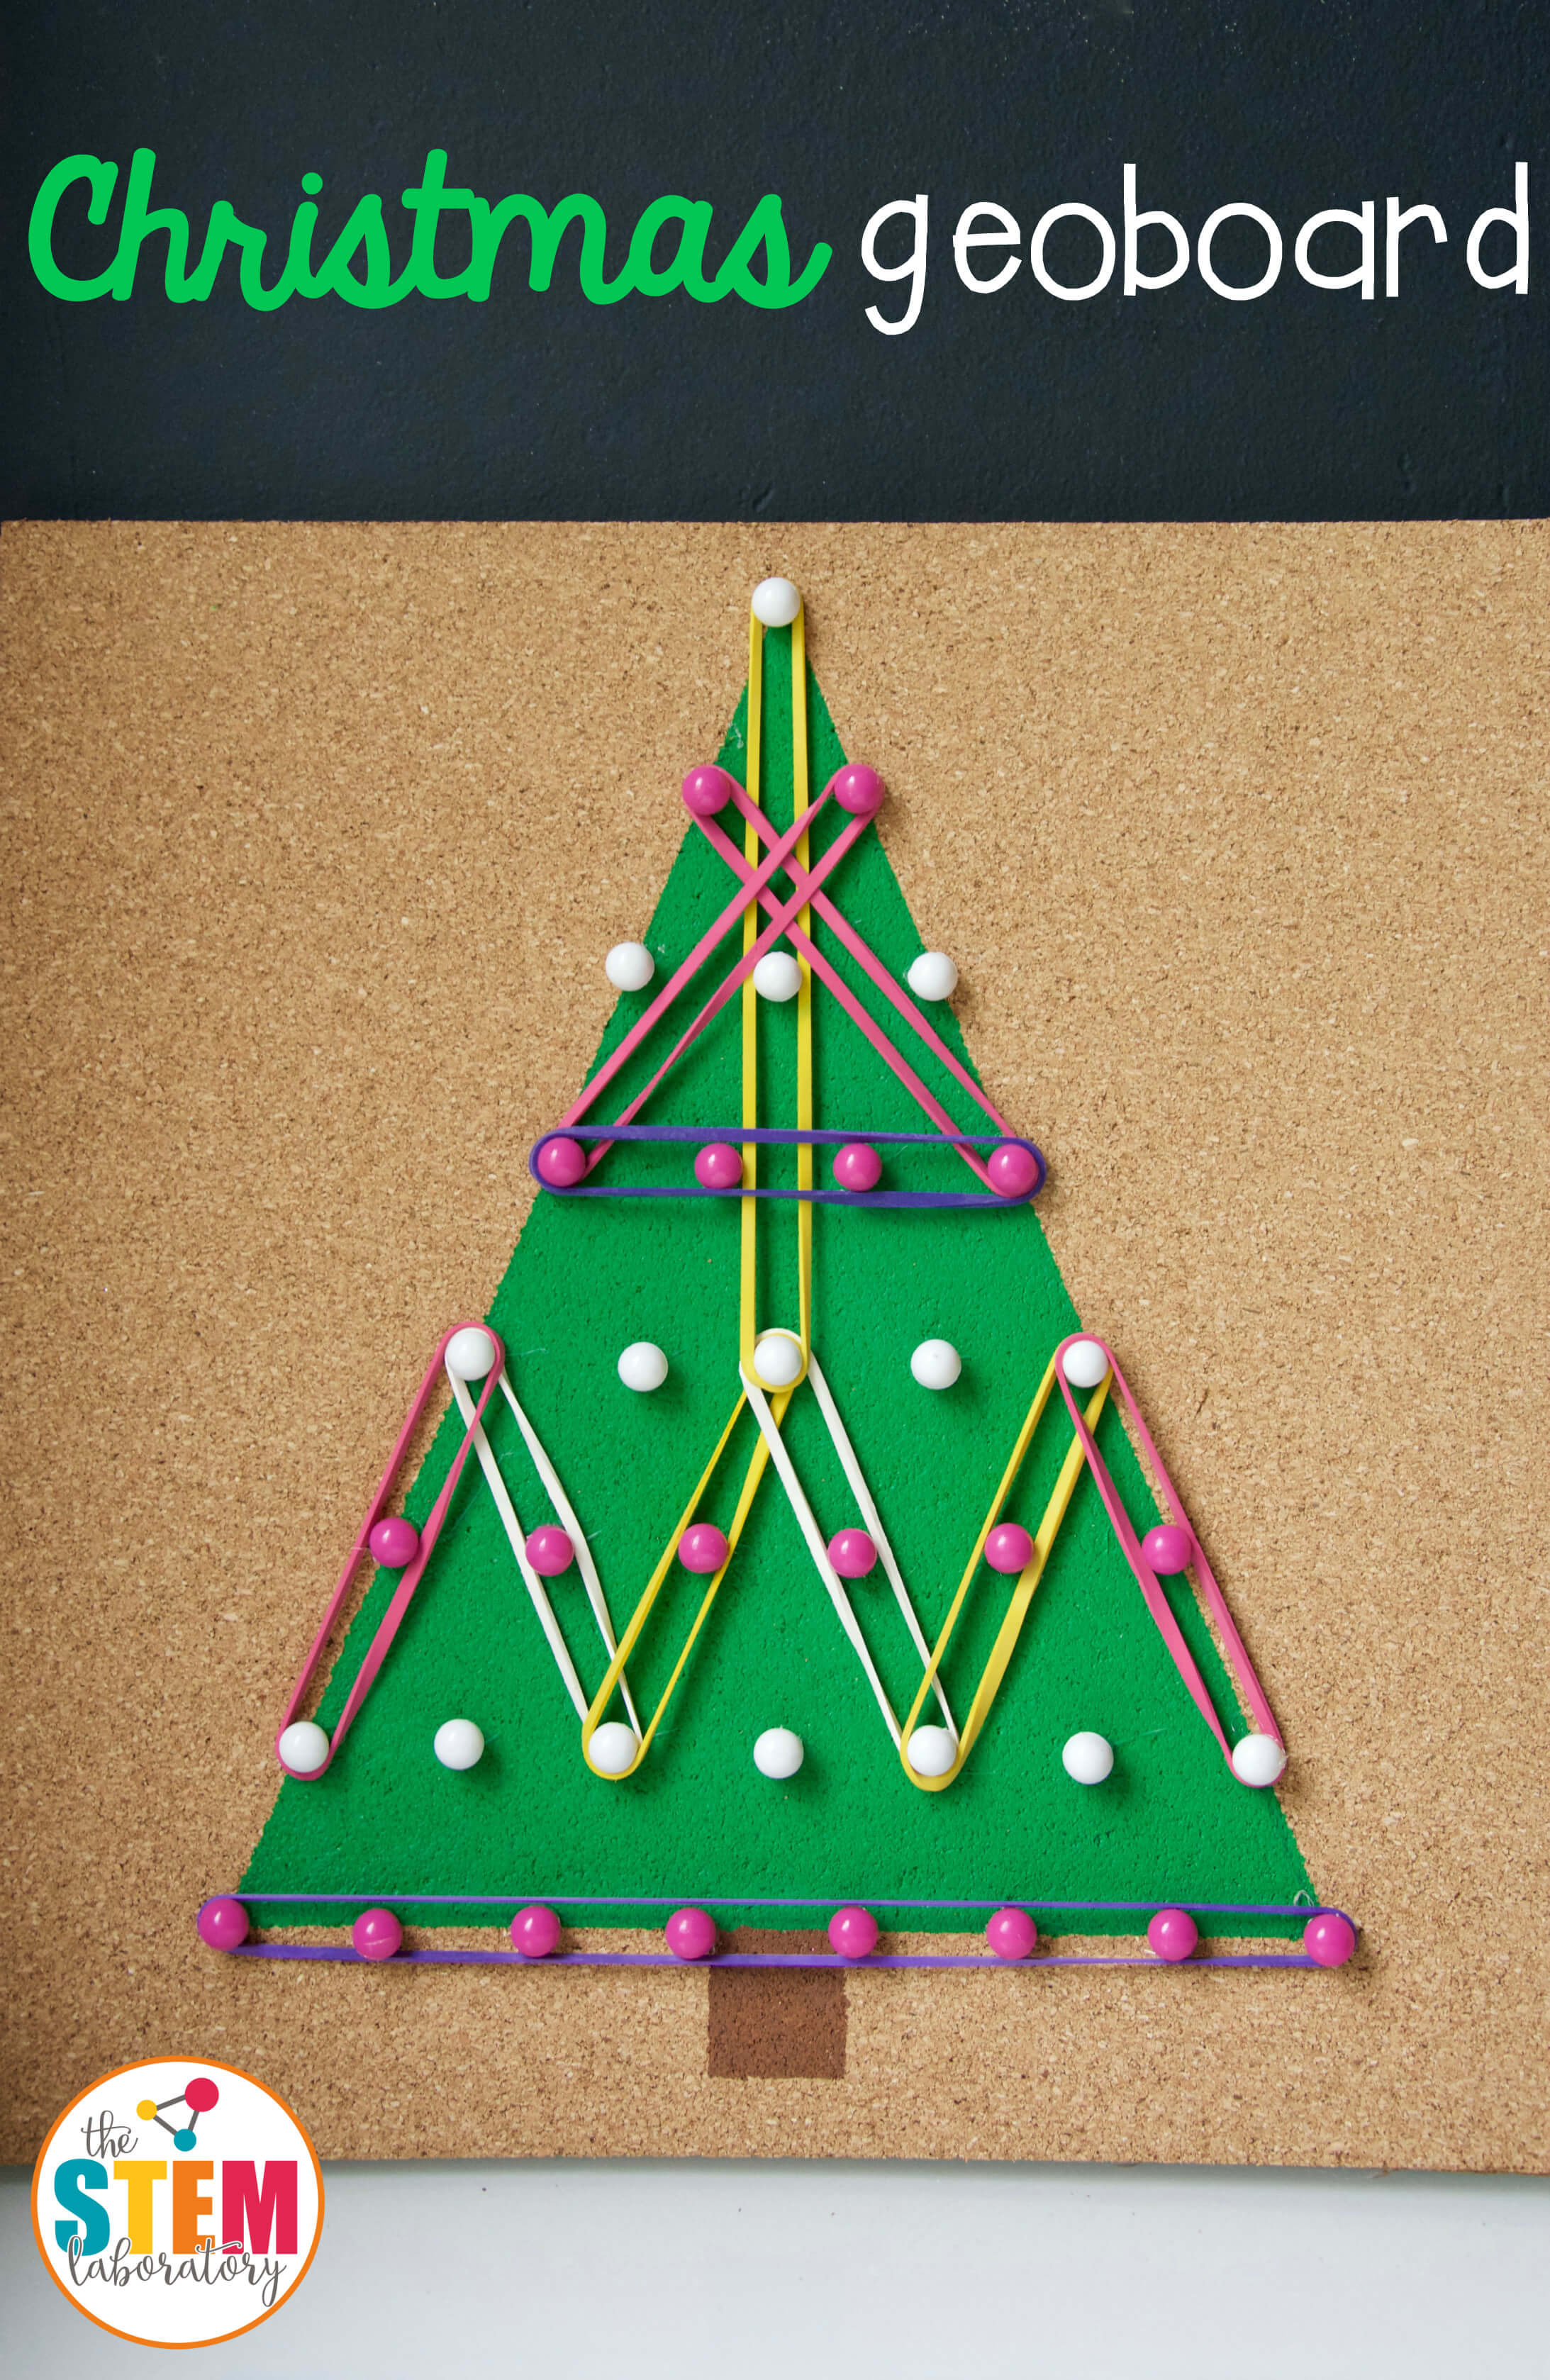 Christmas Tree Geoboard - The Stem Laboratory